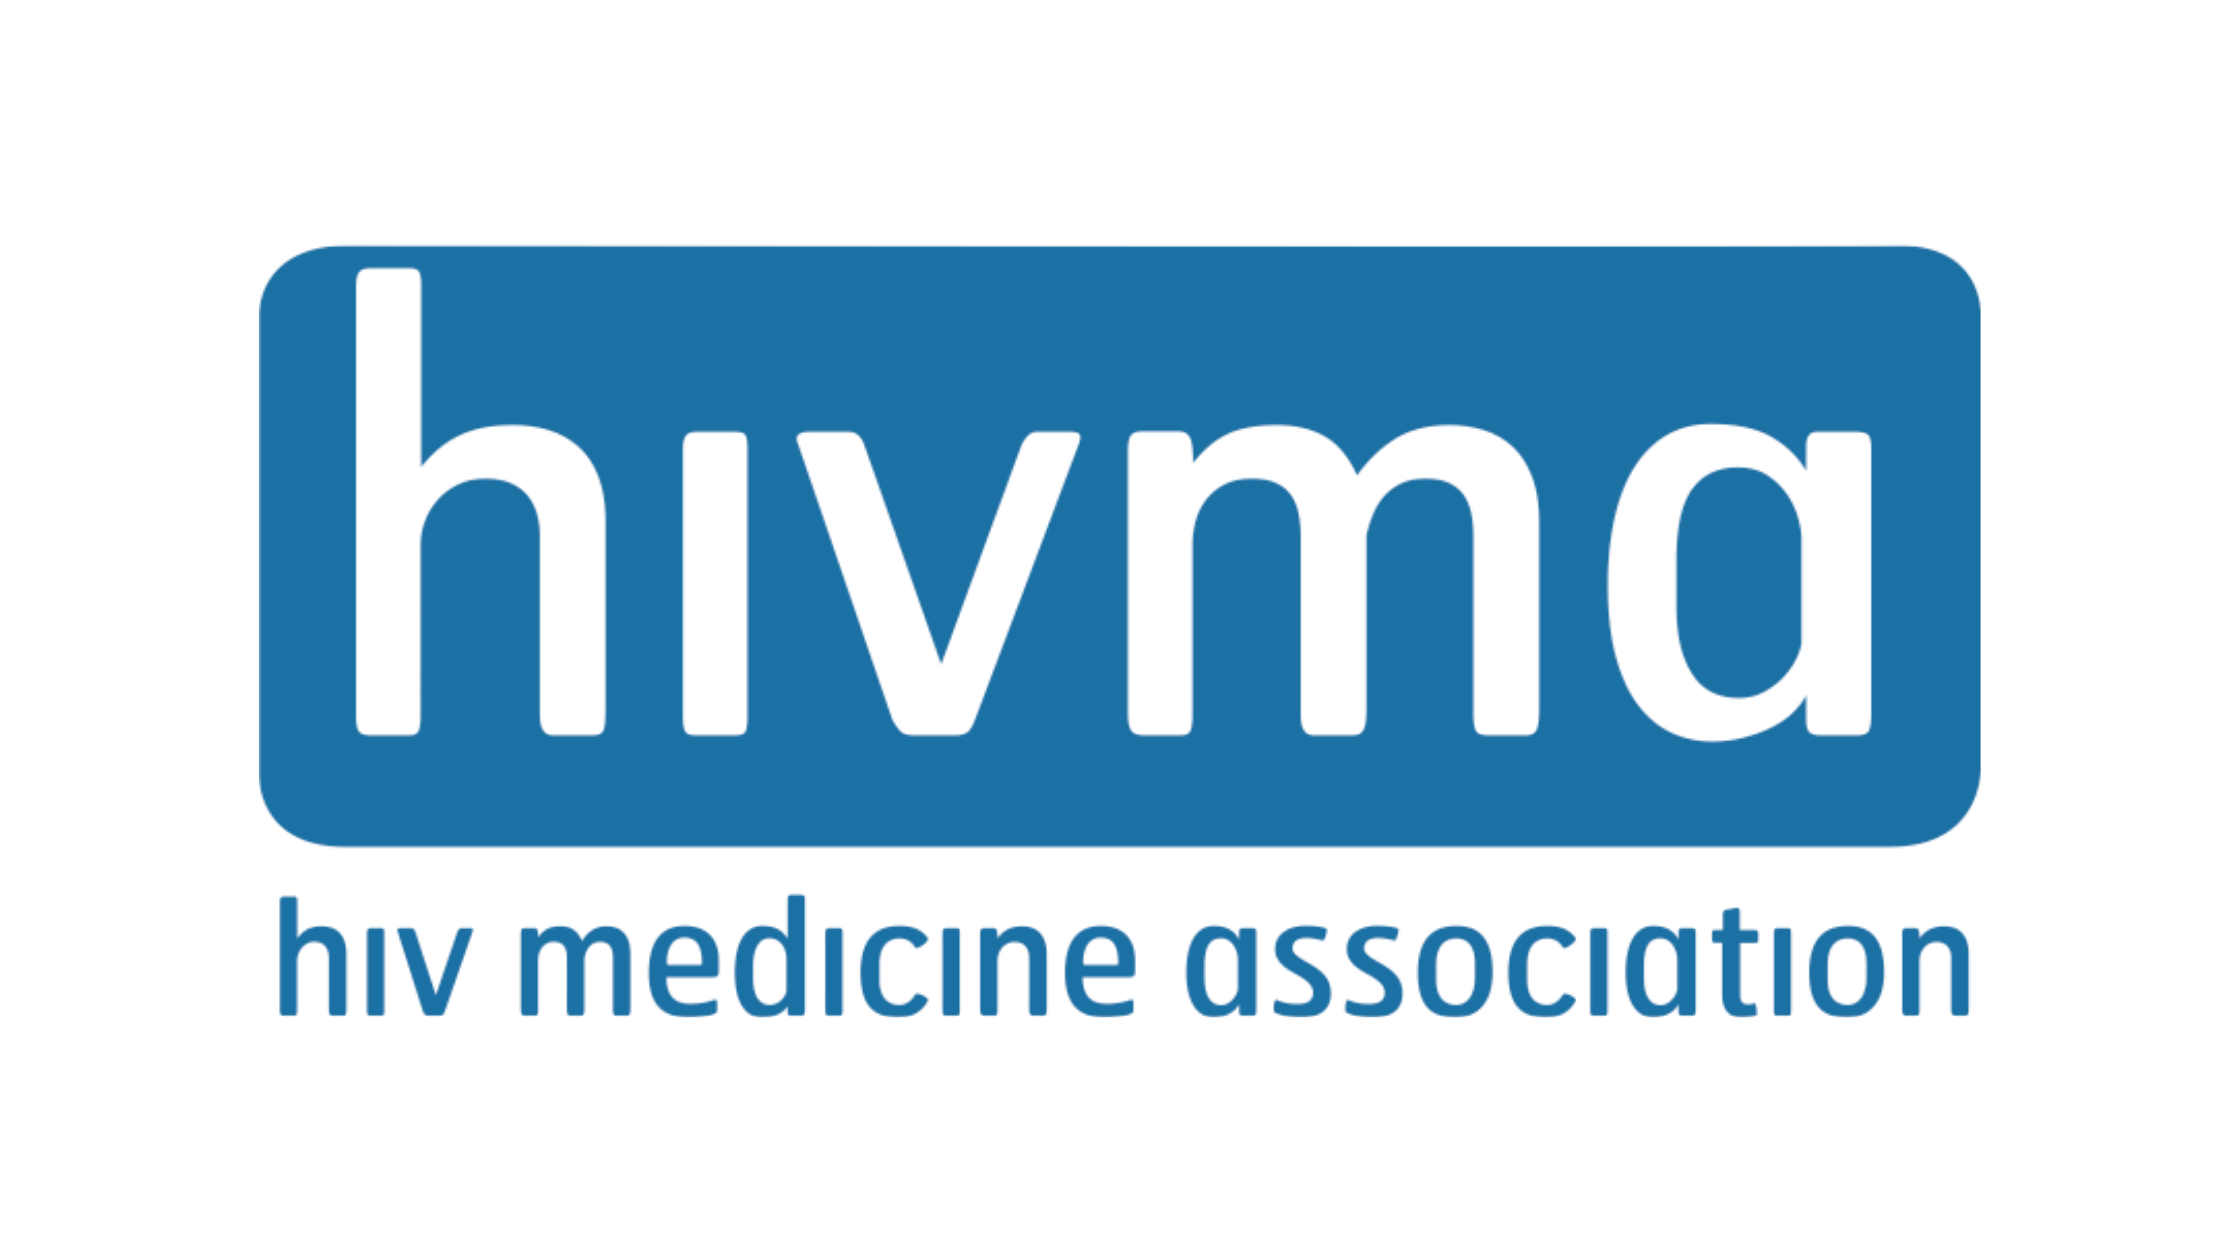 More HIV Care with Updated HIVMA Guideli …